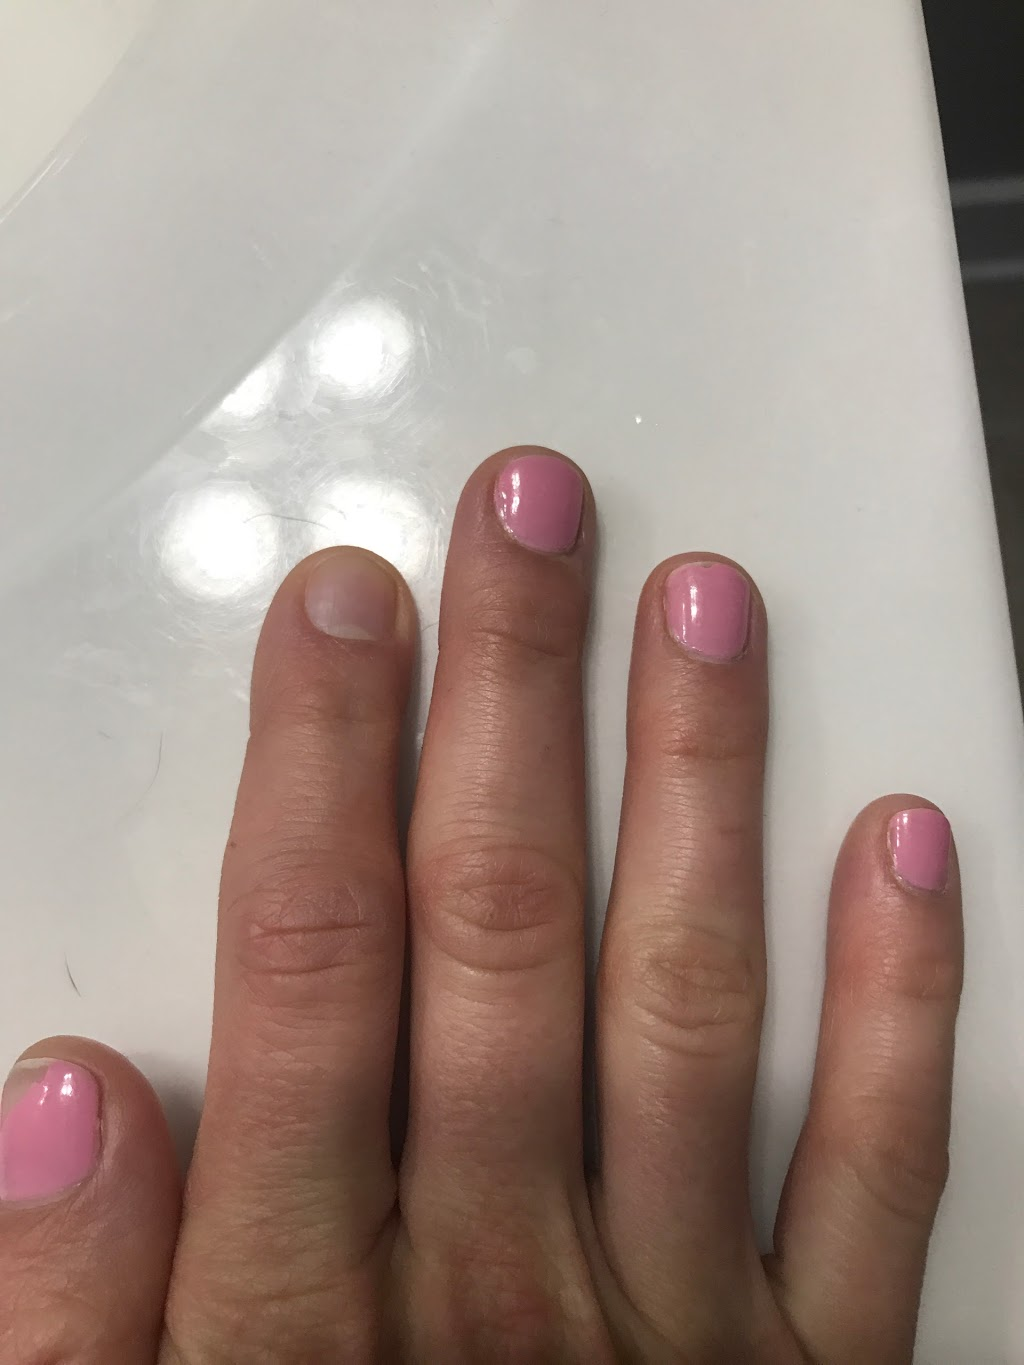 Knightdale Day Spa Nails - spa  | Photo 5 of 7 | Address: 4001 Widewaters Parkway # D, Knightdale, NC 27545, USA | Phone: (919) 261-9851